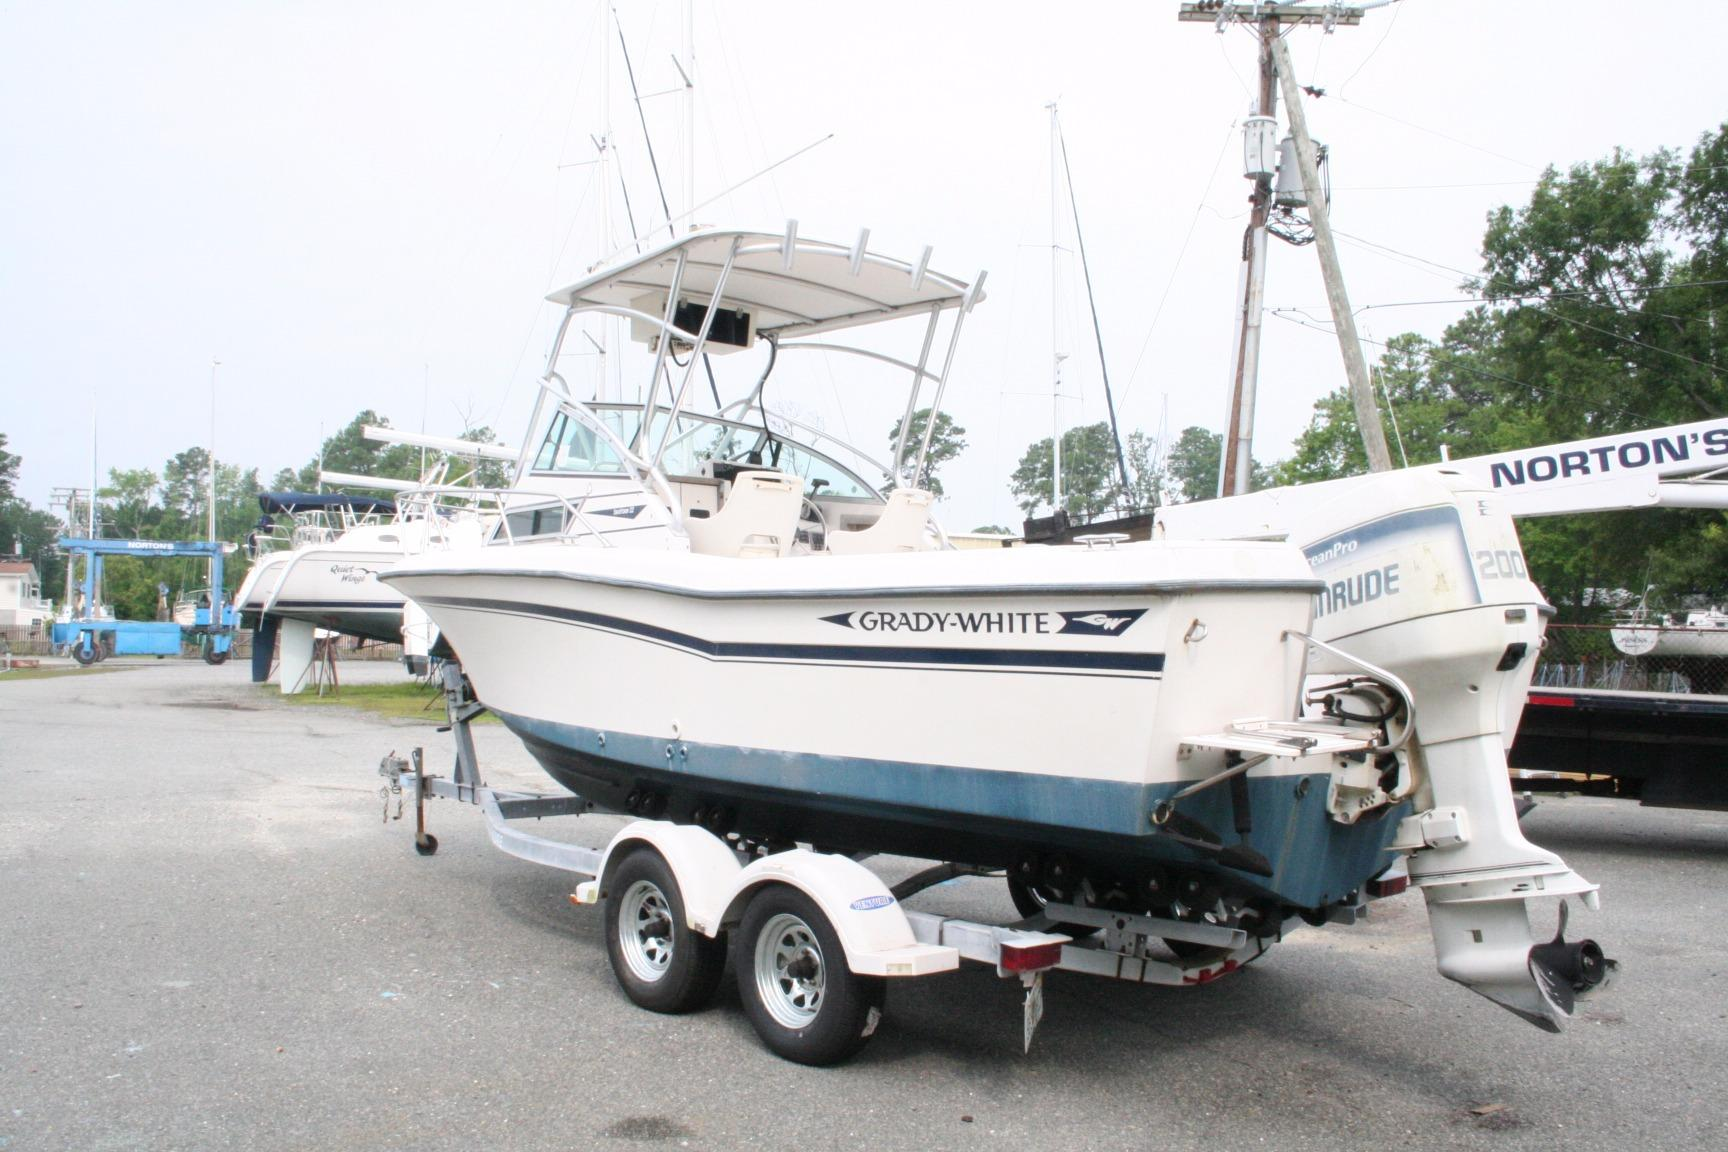 1993 Grady-White Seafarer 22 | Powerboats for Sale